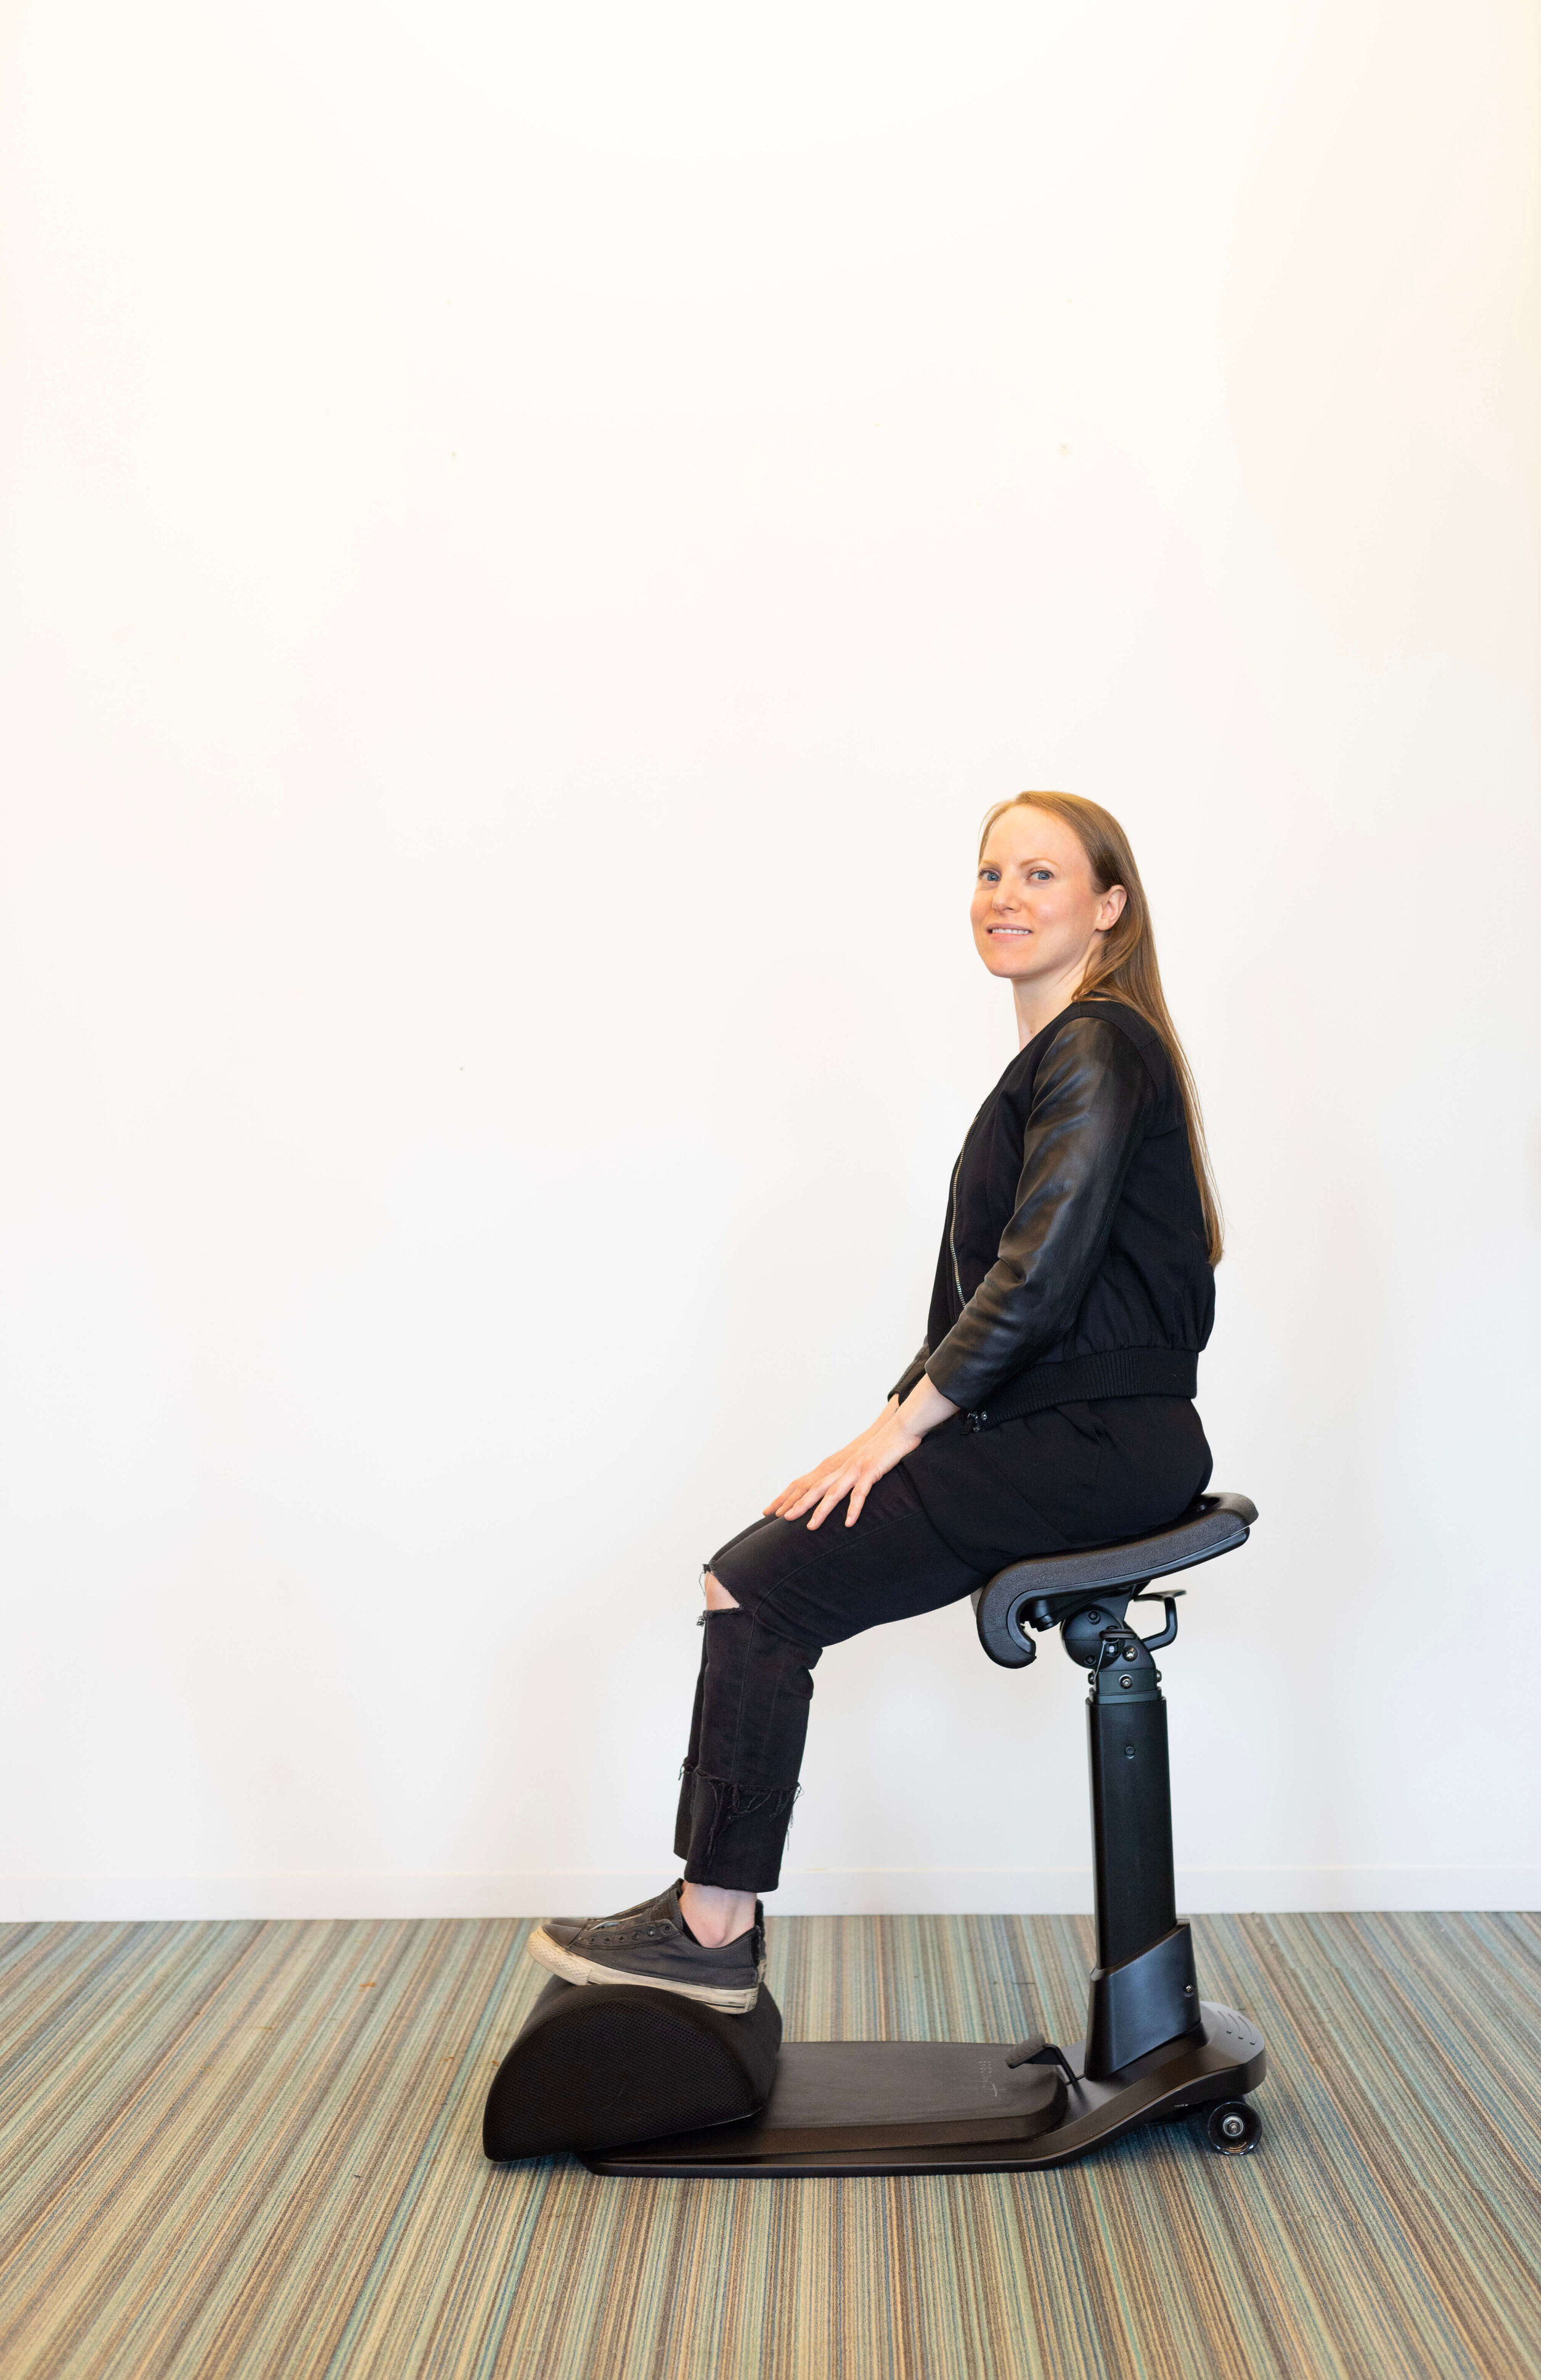 A cushion footrest + adjustable-height chair in sitting position: The ErgoFoam Ergonomic Under Desk Foot Rest complements our LeanRite™ Elite standing desk chair perfectly